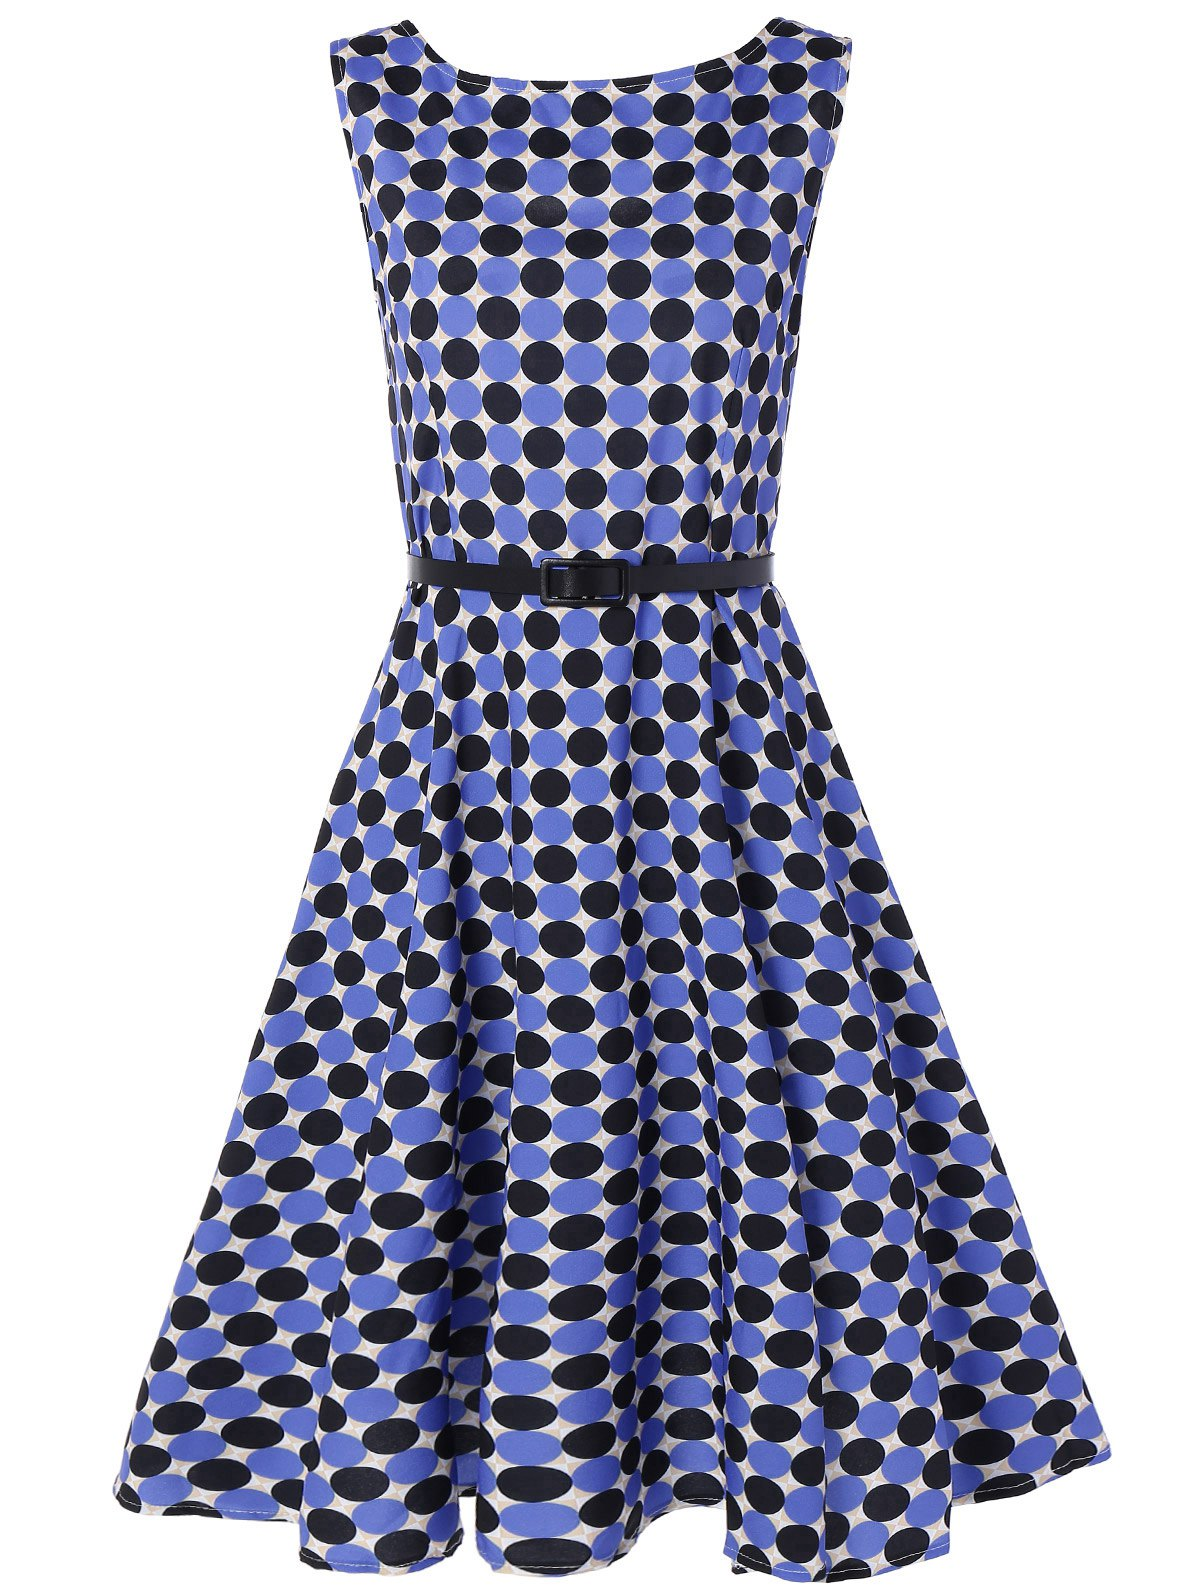 Sleeveless Polka Dot Swing Vintage Dress - BLUE L